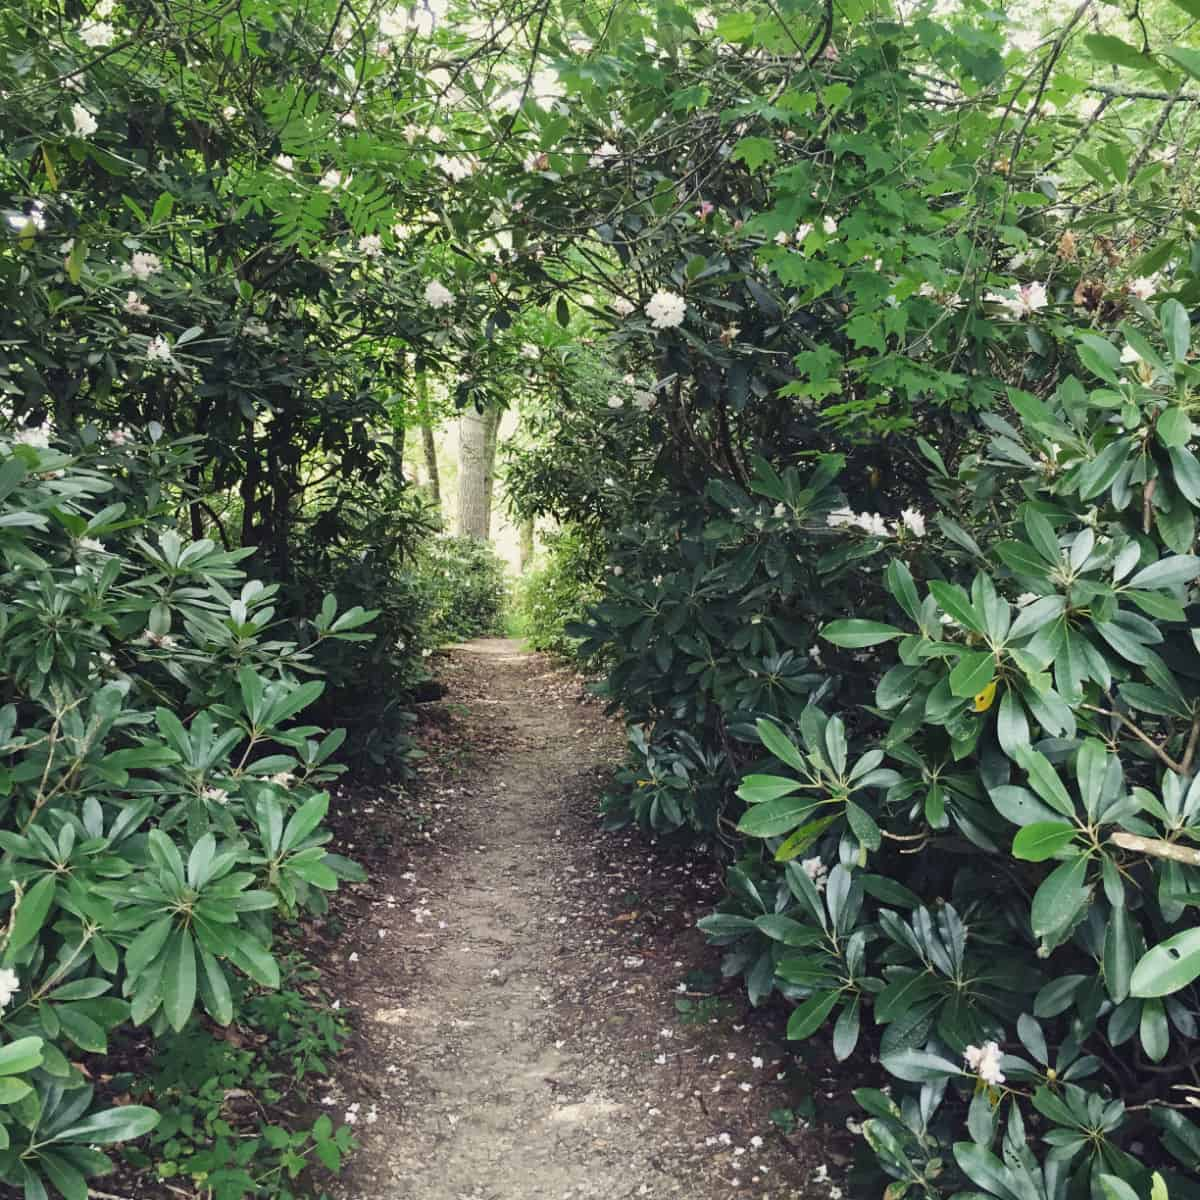 Rhododendron Path at Trout Lake